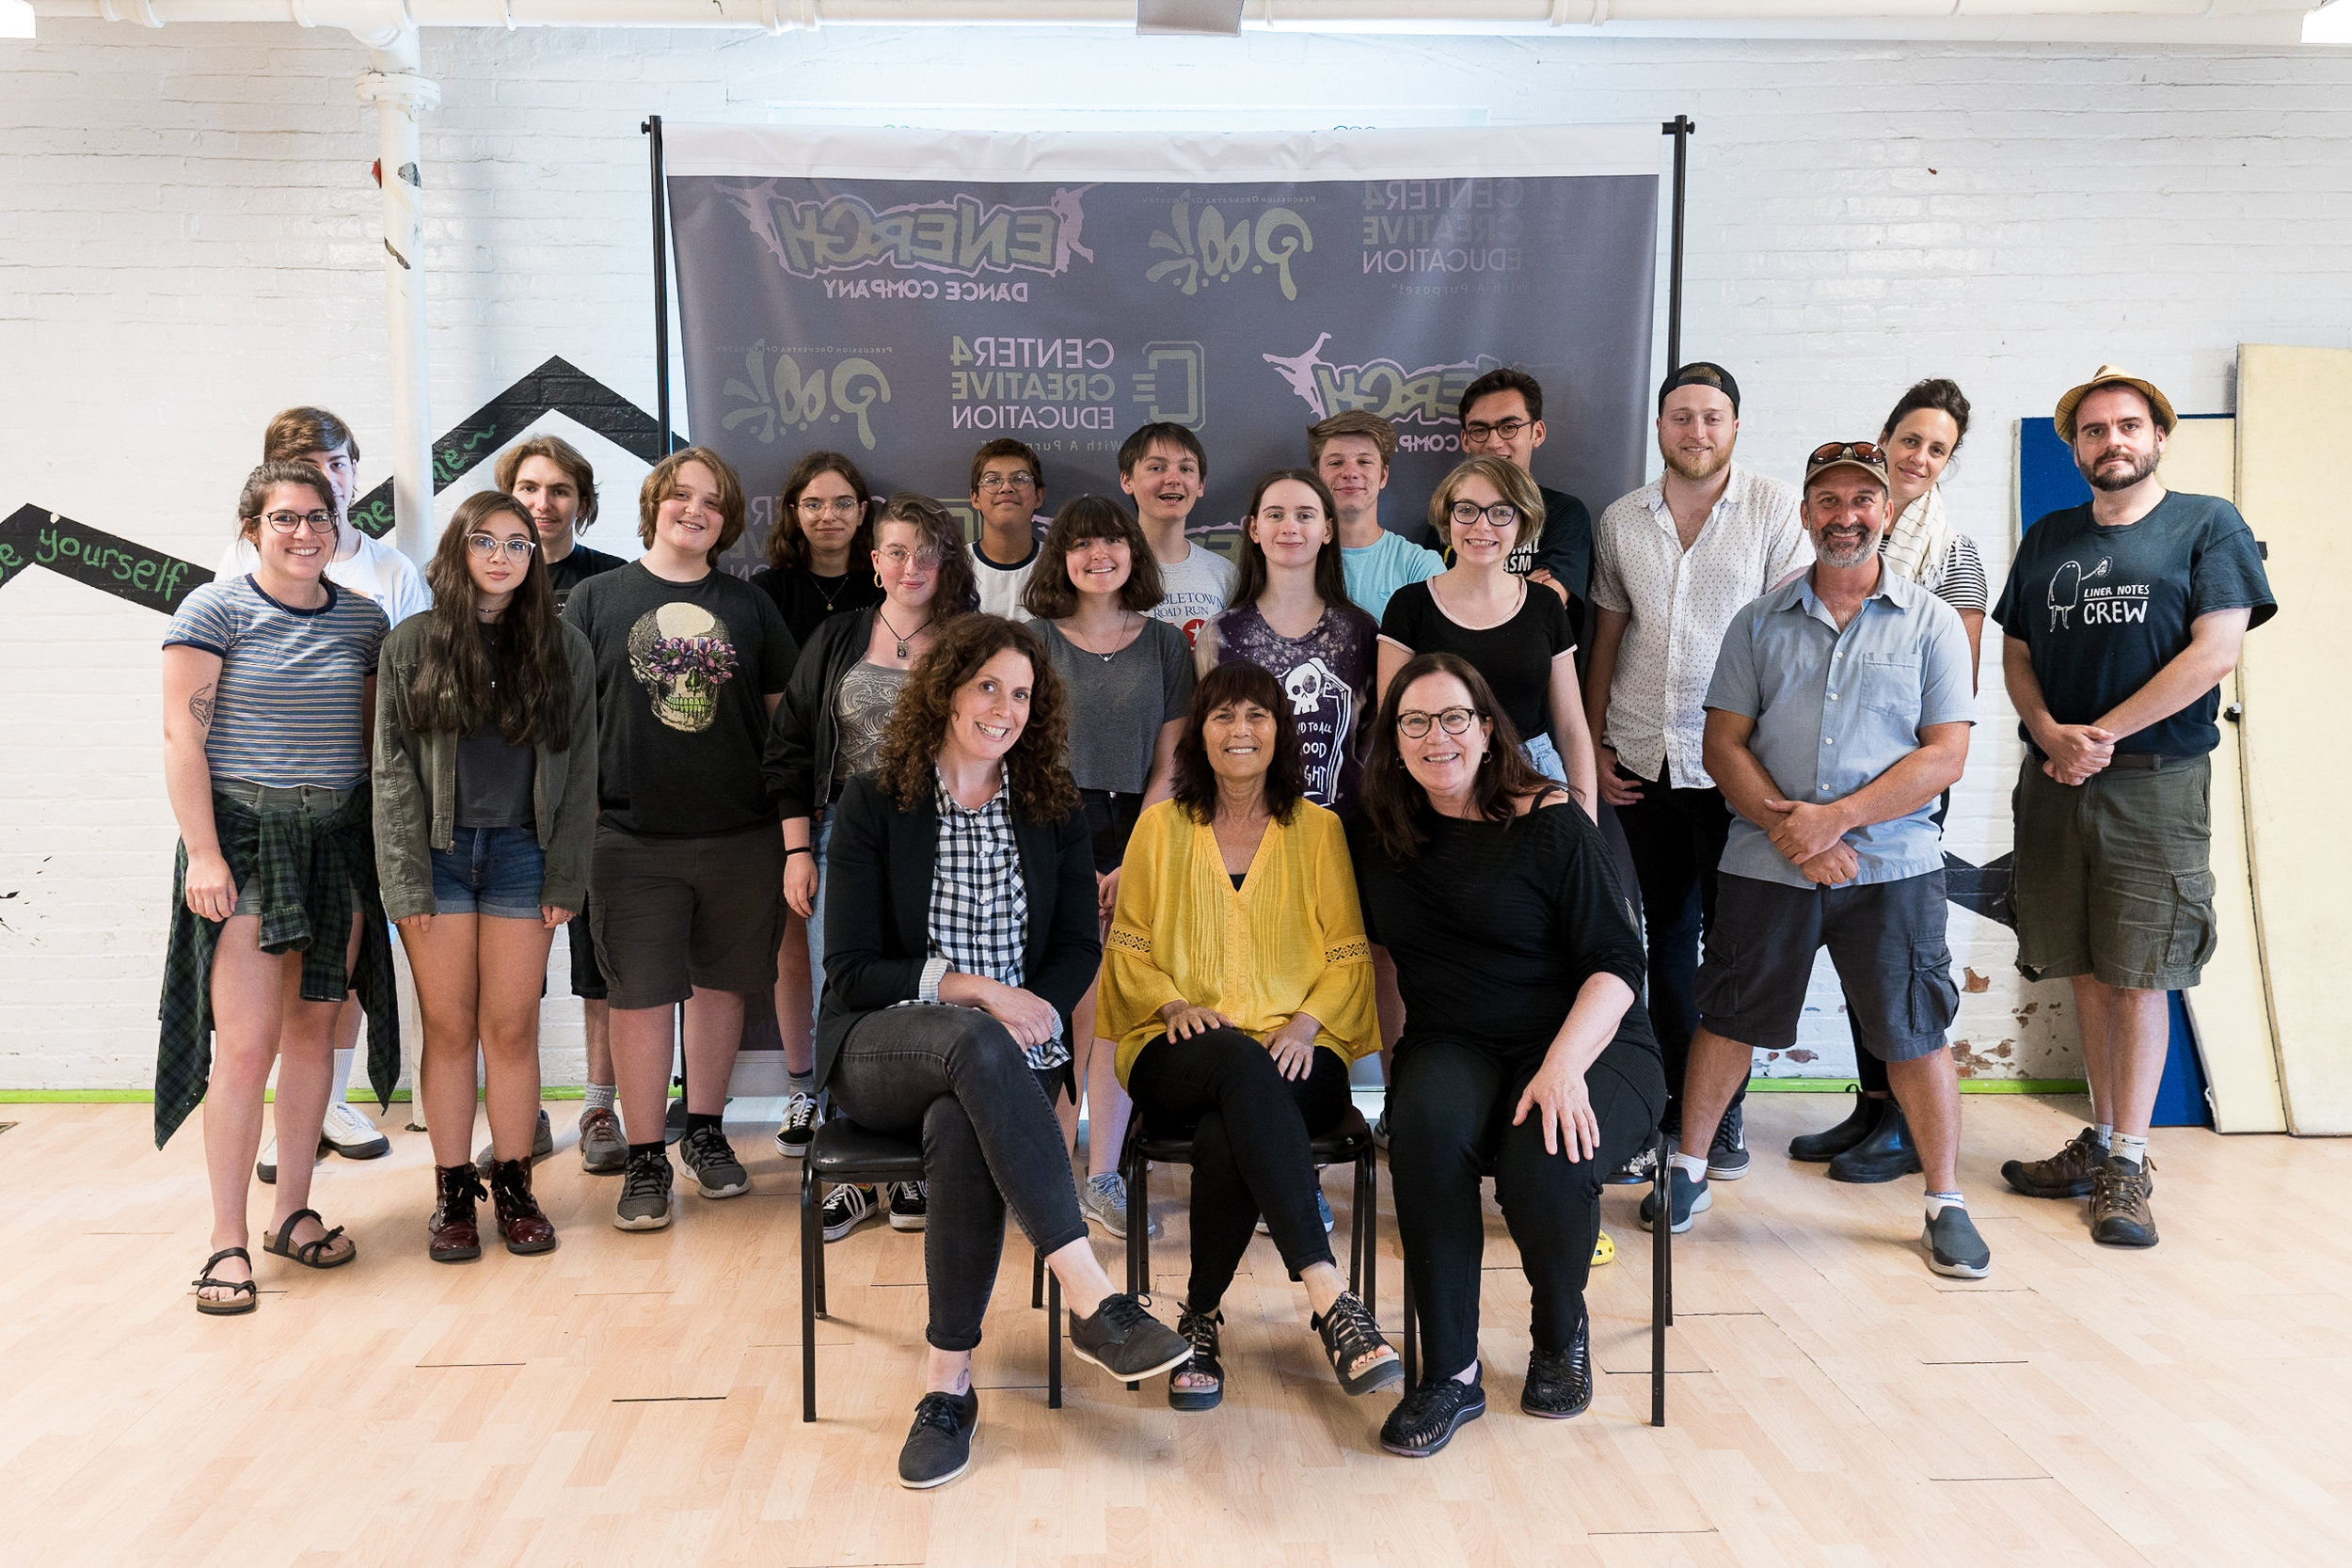 Woodstock Film Festival Co-Founder and Executive Director Meira Blaustein with Film Lab students and instructors